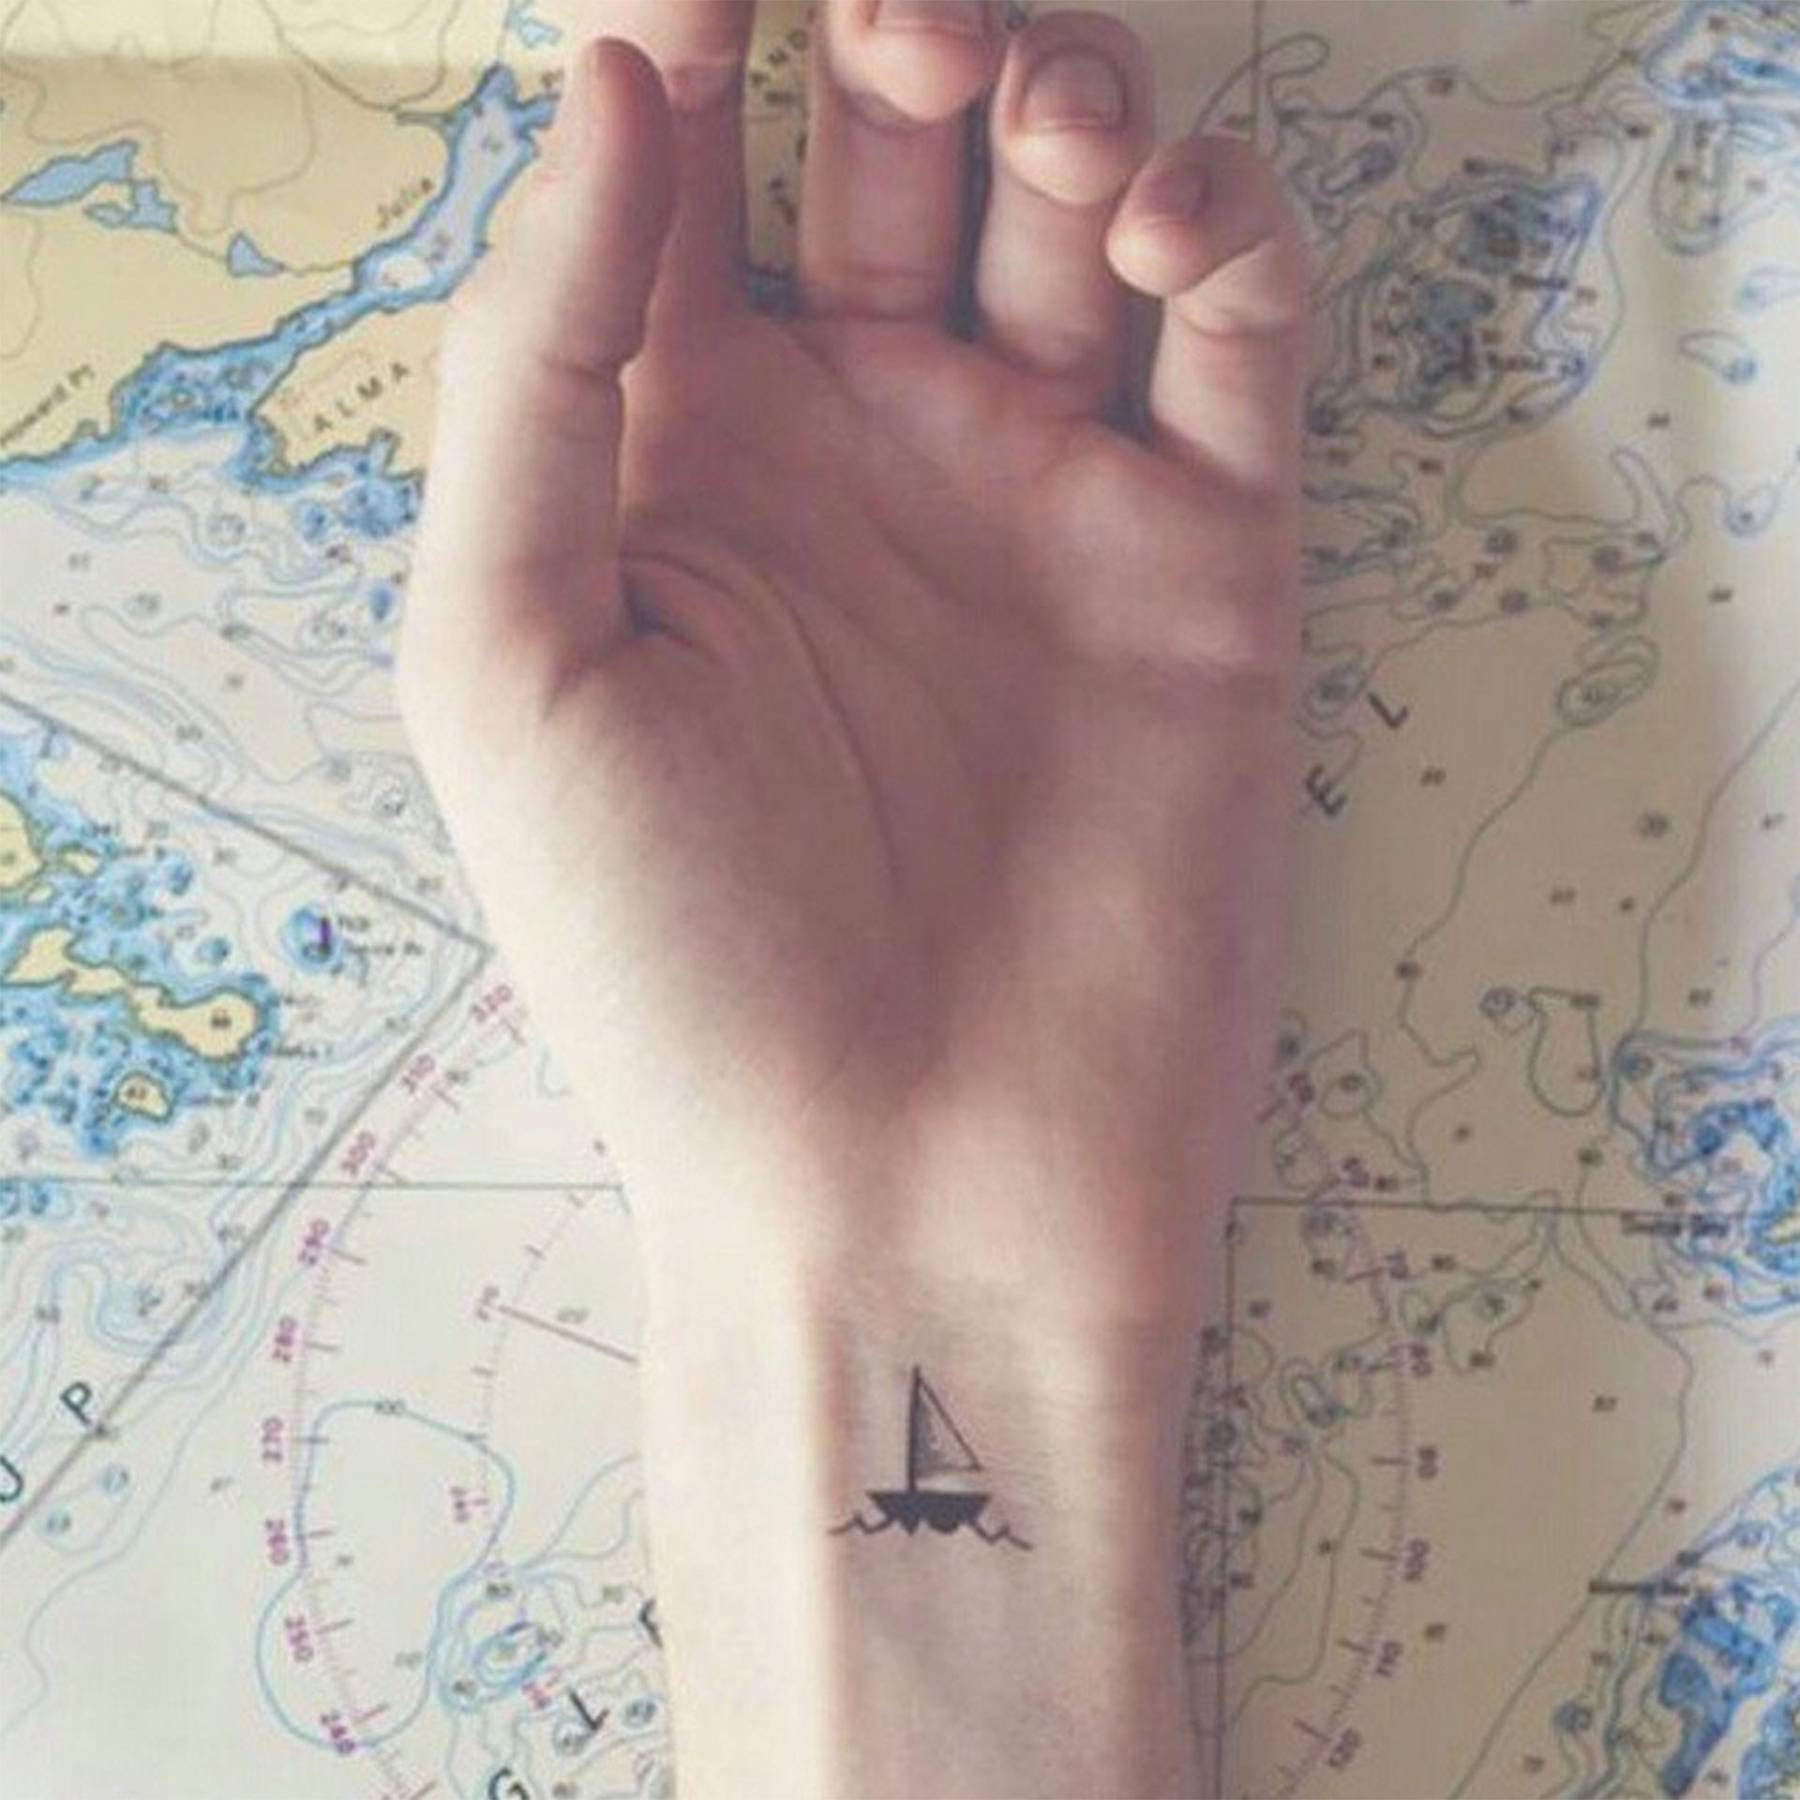 95b31c48d Where To Get A Tattoo: Pretty Tattoo Placement Ideas For Girls | Glamour UK